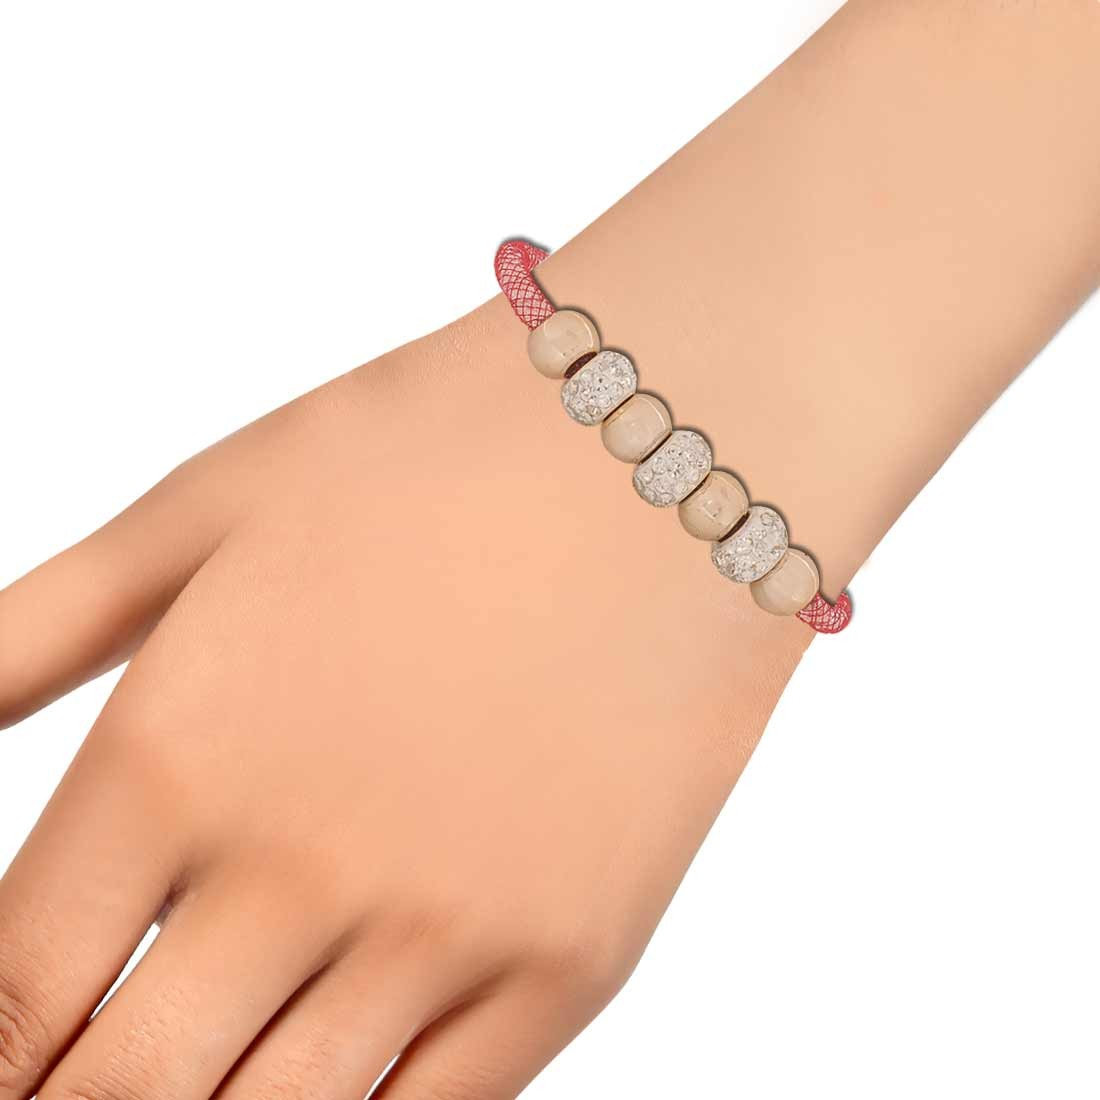 Sober Pink Bronze Designer Adjustable Get-together Bracelet Alloy Maayra MY6810